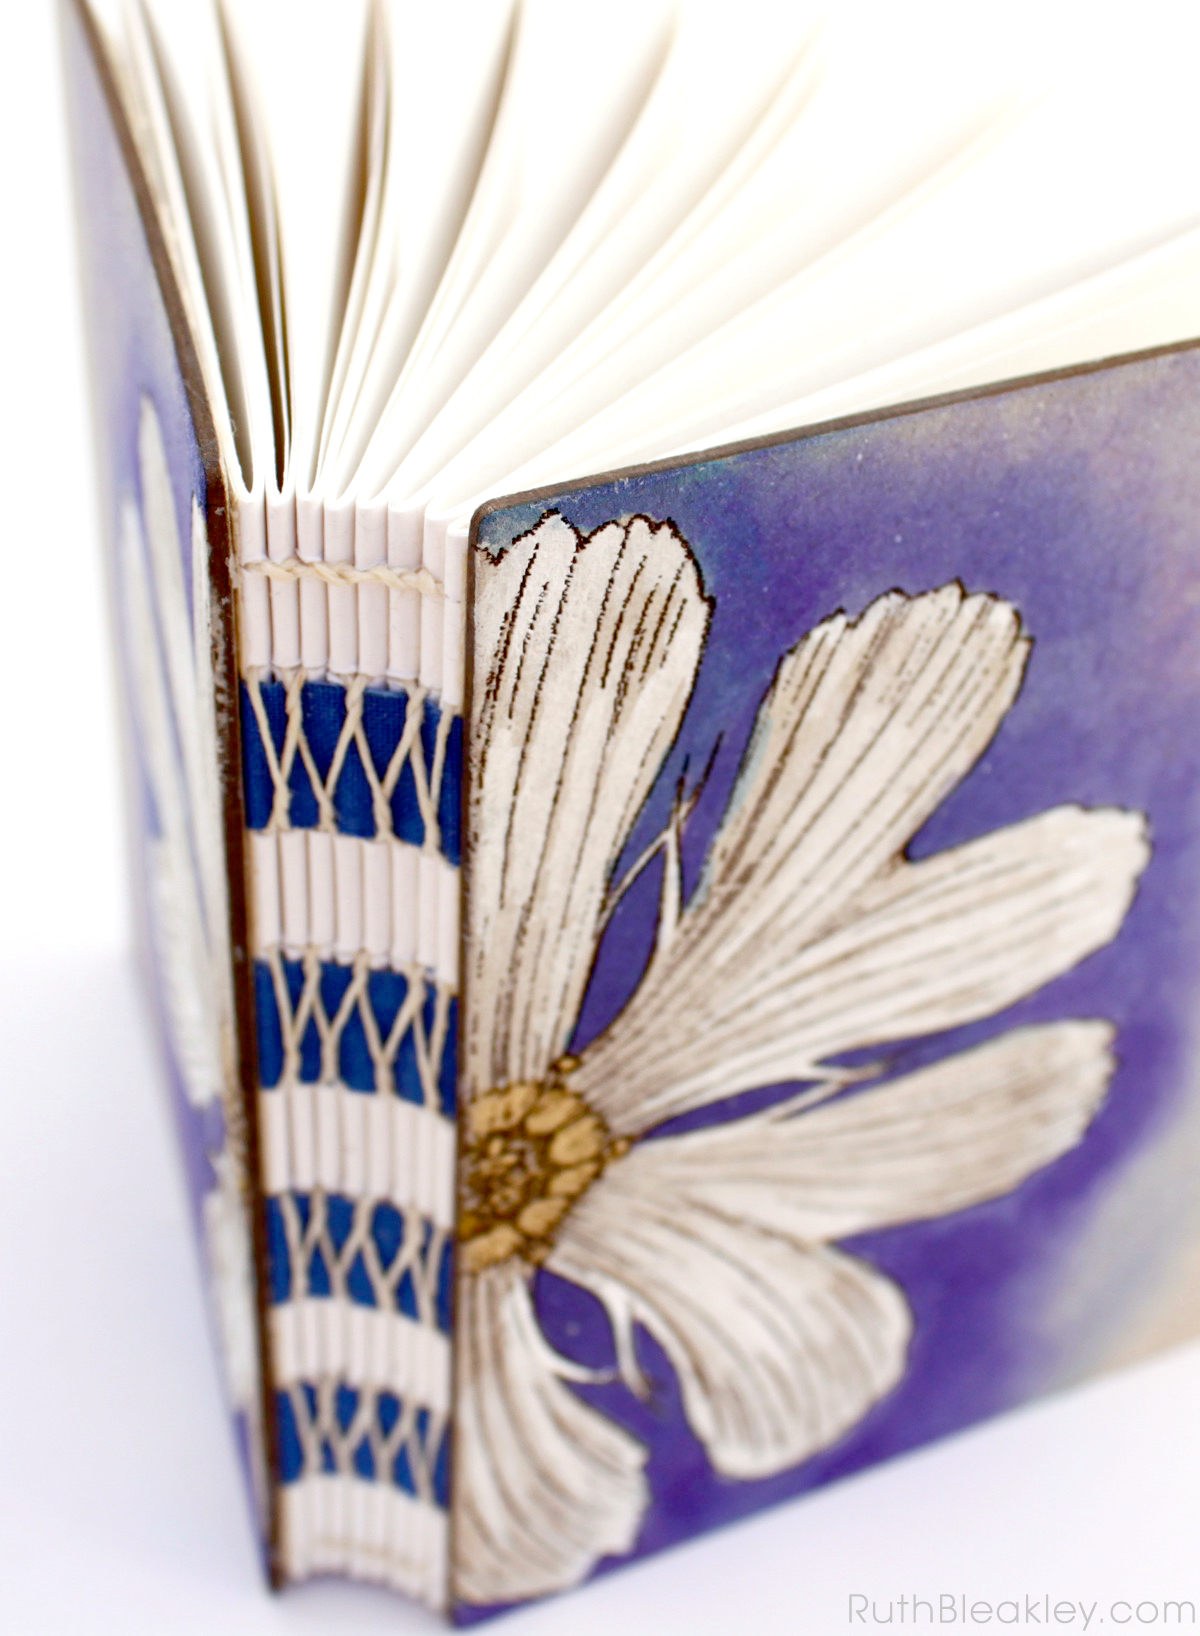 Unlined Art Journal with Purple and White Daisy handpainted by book artist Ruth Bleakley - 4